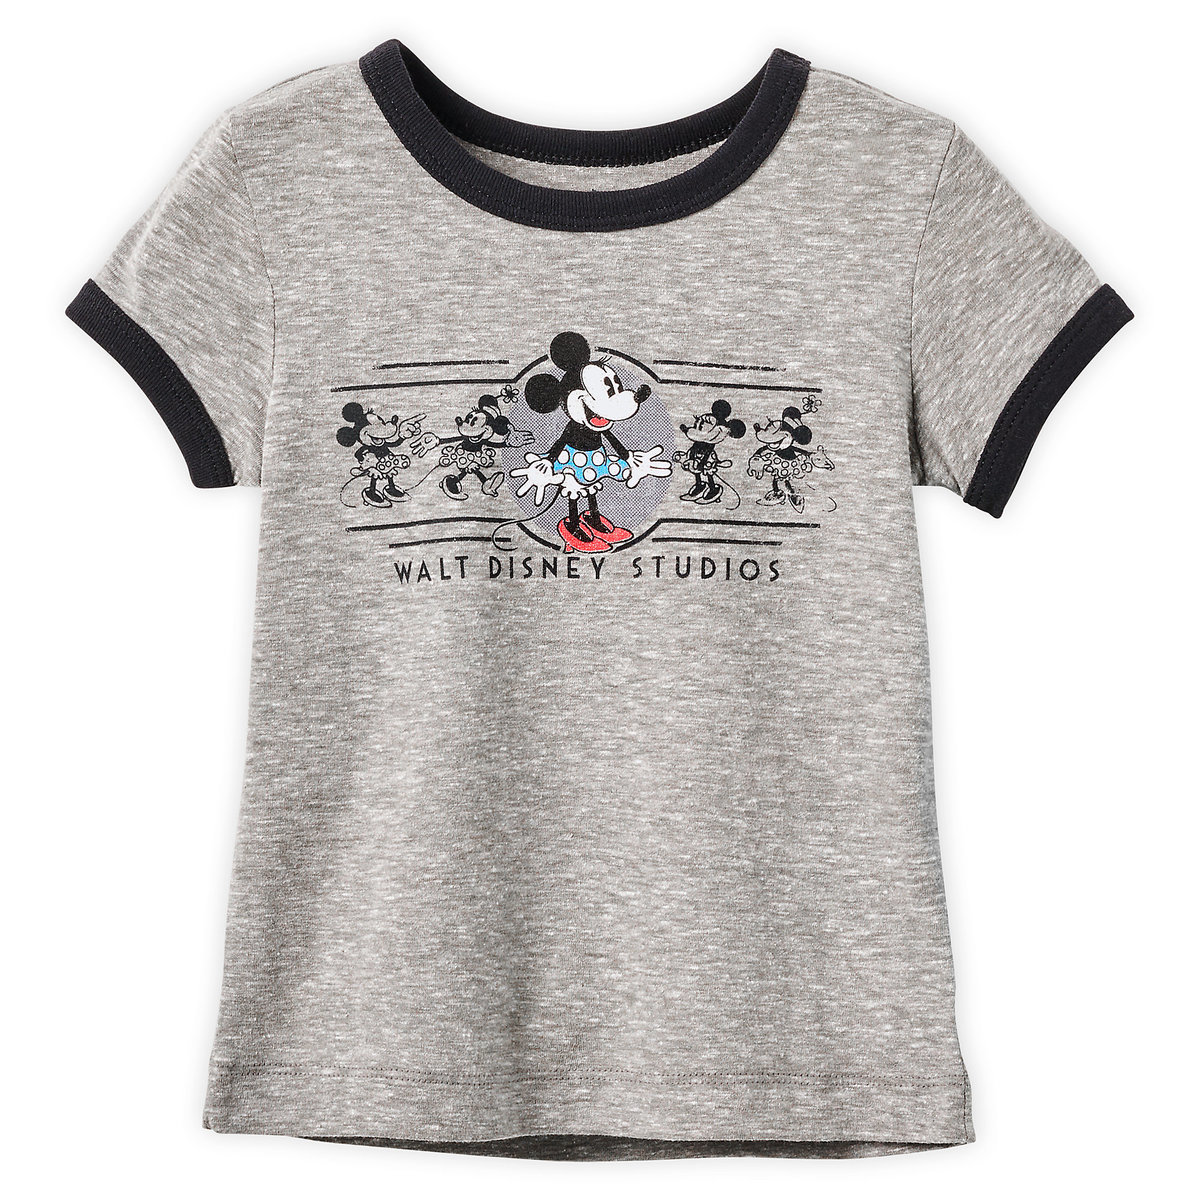 64ae25fa5fcb Product Image of Minnie Mouse Ringer T-Shirt for Girls - Walt Disney  Studios #